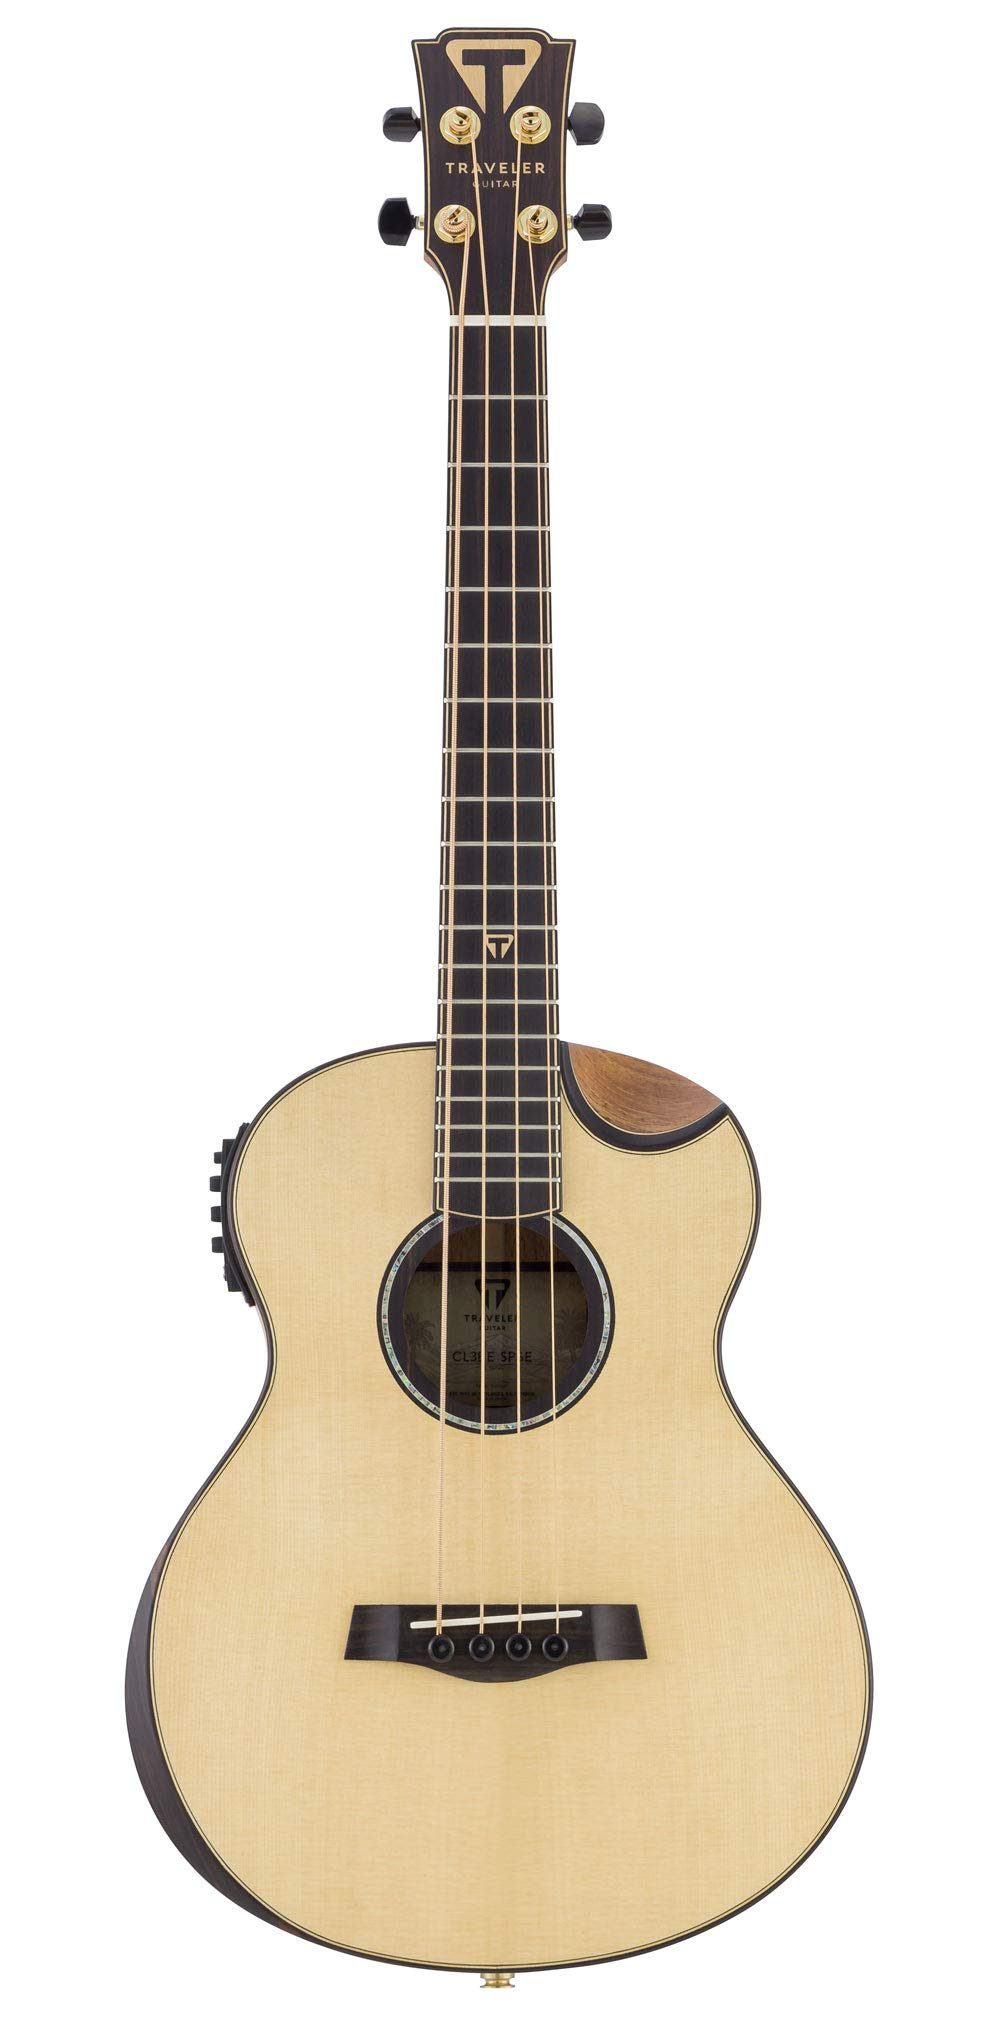 Traveler Guitar 4 String Acoustic-Electric Bass Guitar Right (CL3BE SPSE